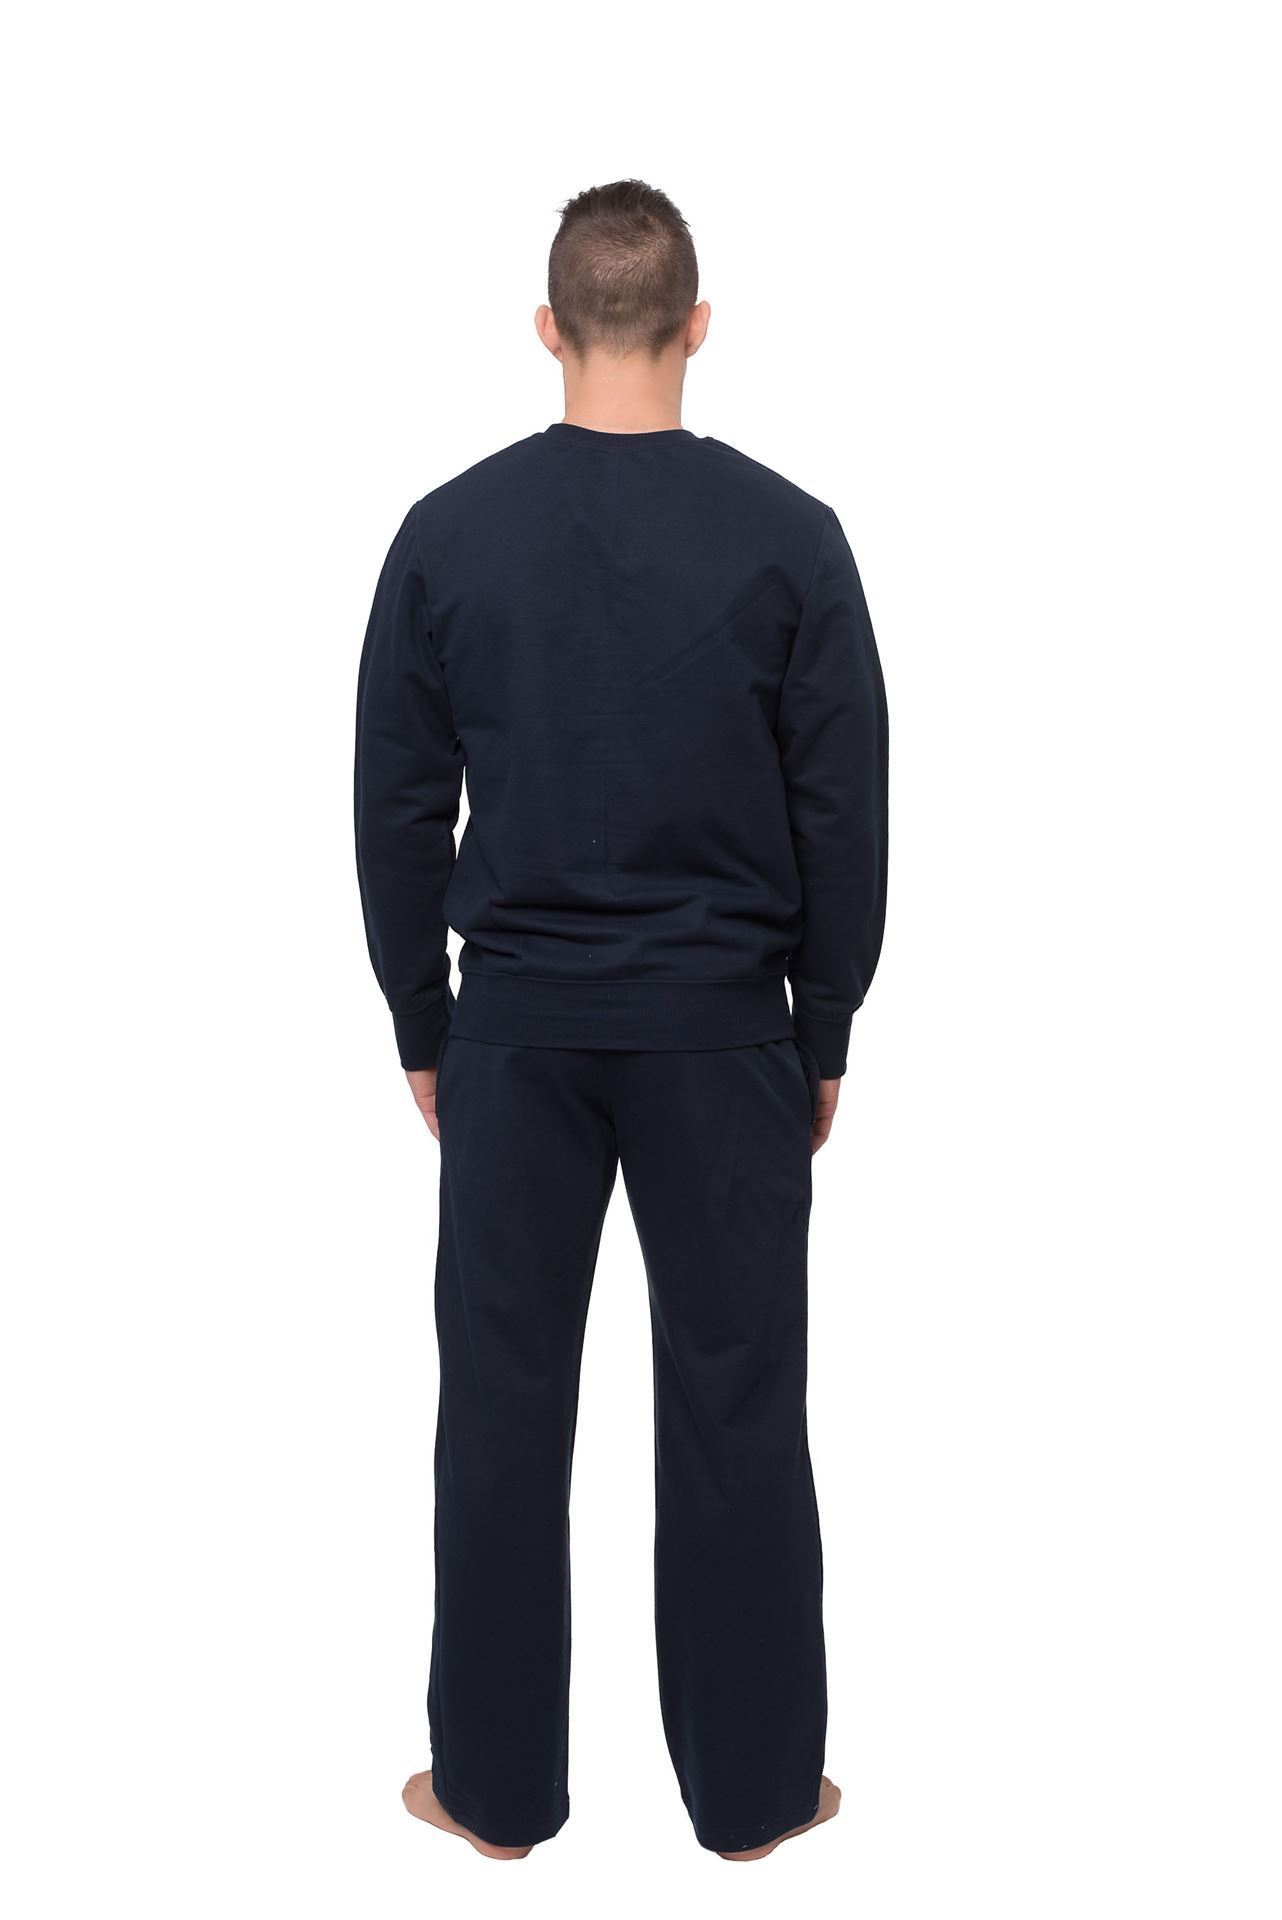 Picture of Men's twin set - long sleeves shirt and pants